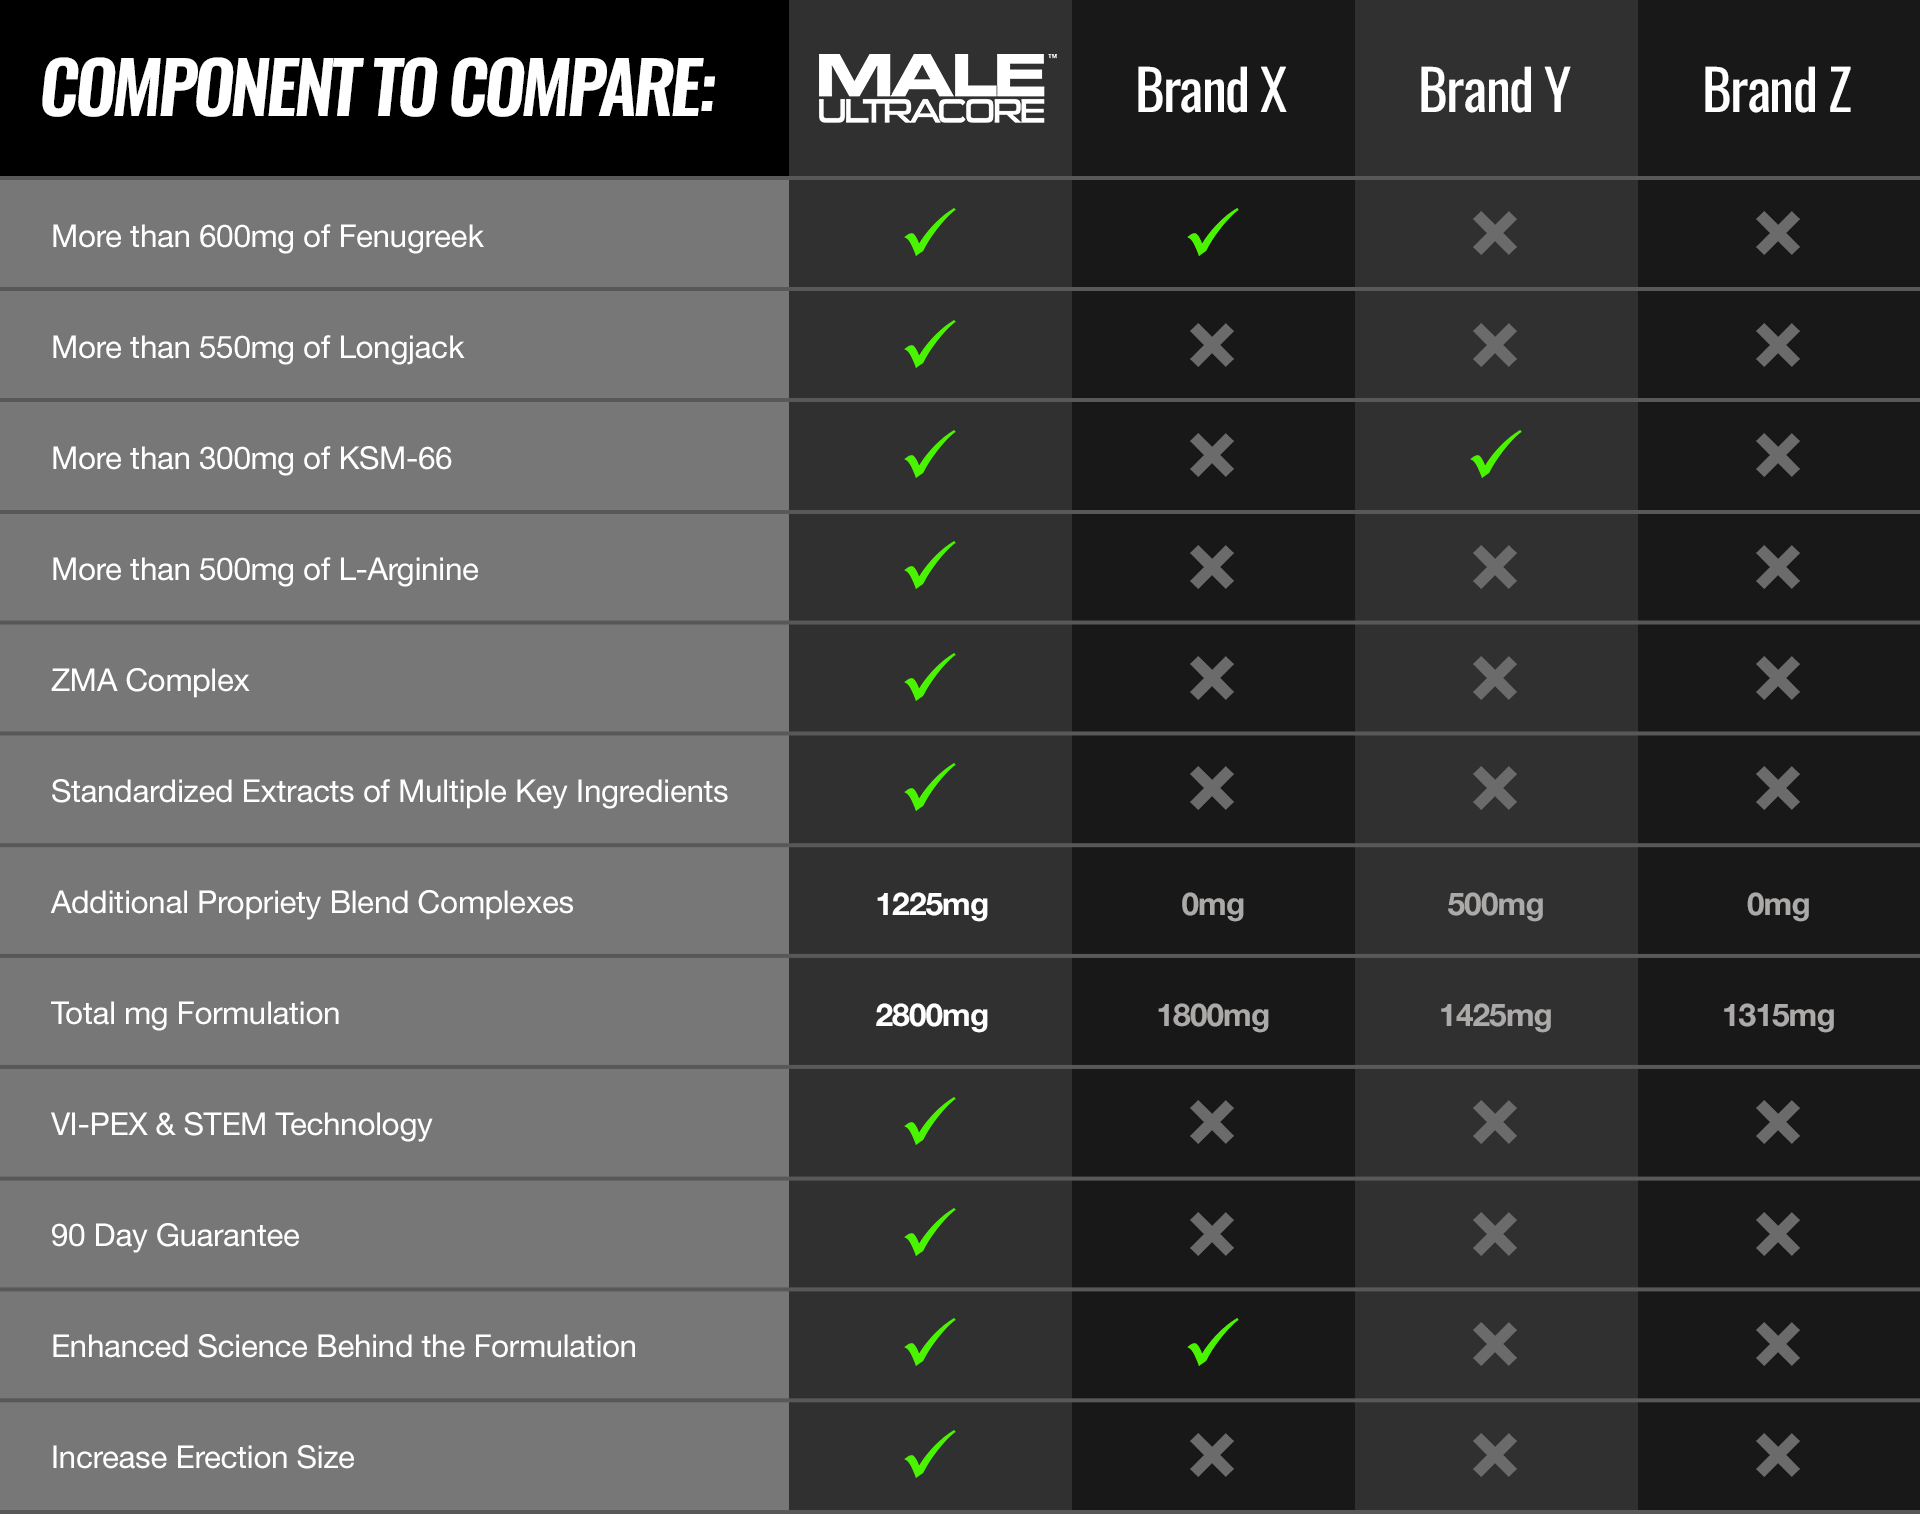 Compare Male UltraCore To Other Testosterone Supplements